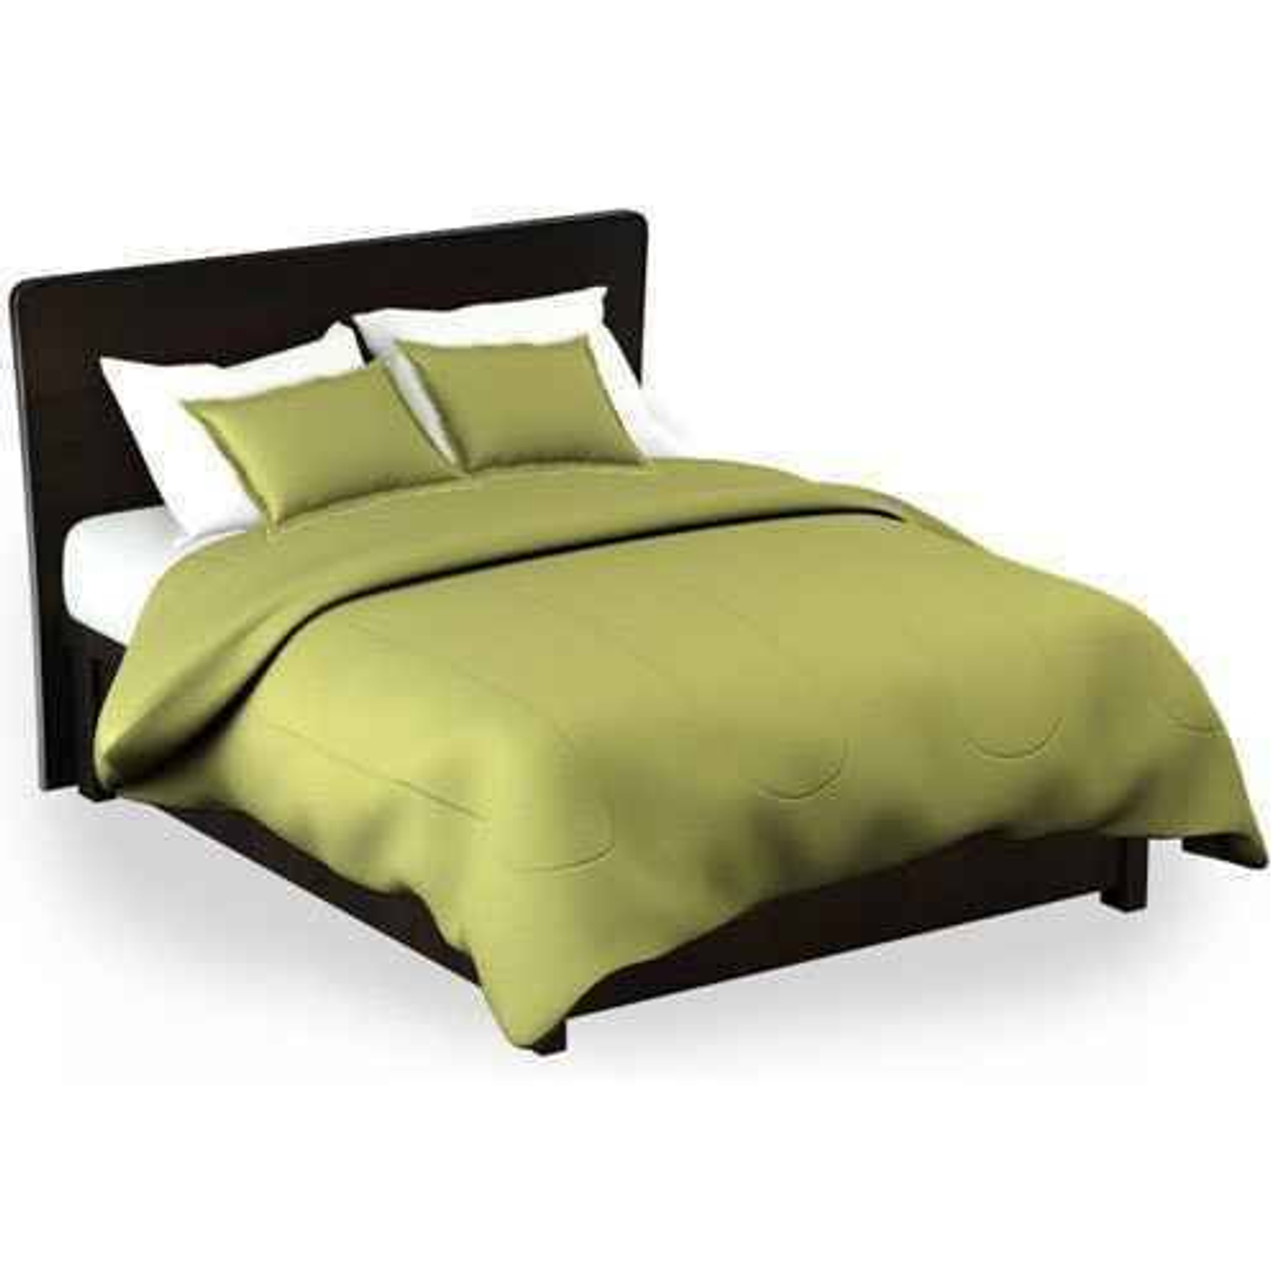 WestPoint/Martex Westpoint or Martex Rx or Pillow Sham or Solid Lime Green or Pack Of 20-24